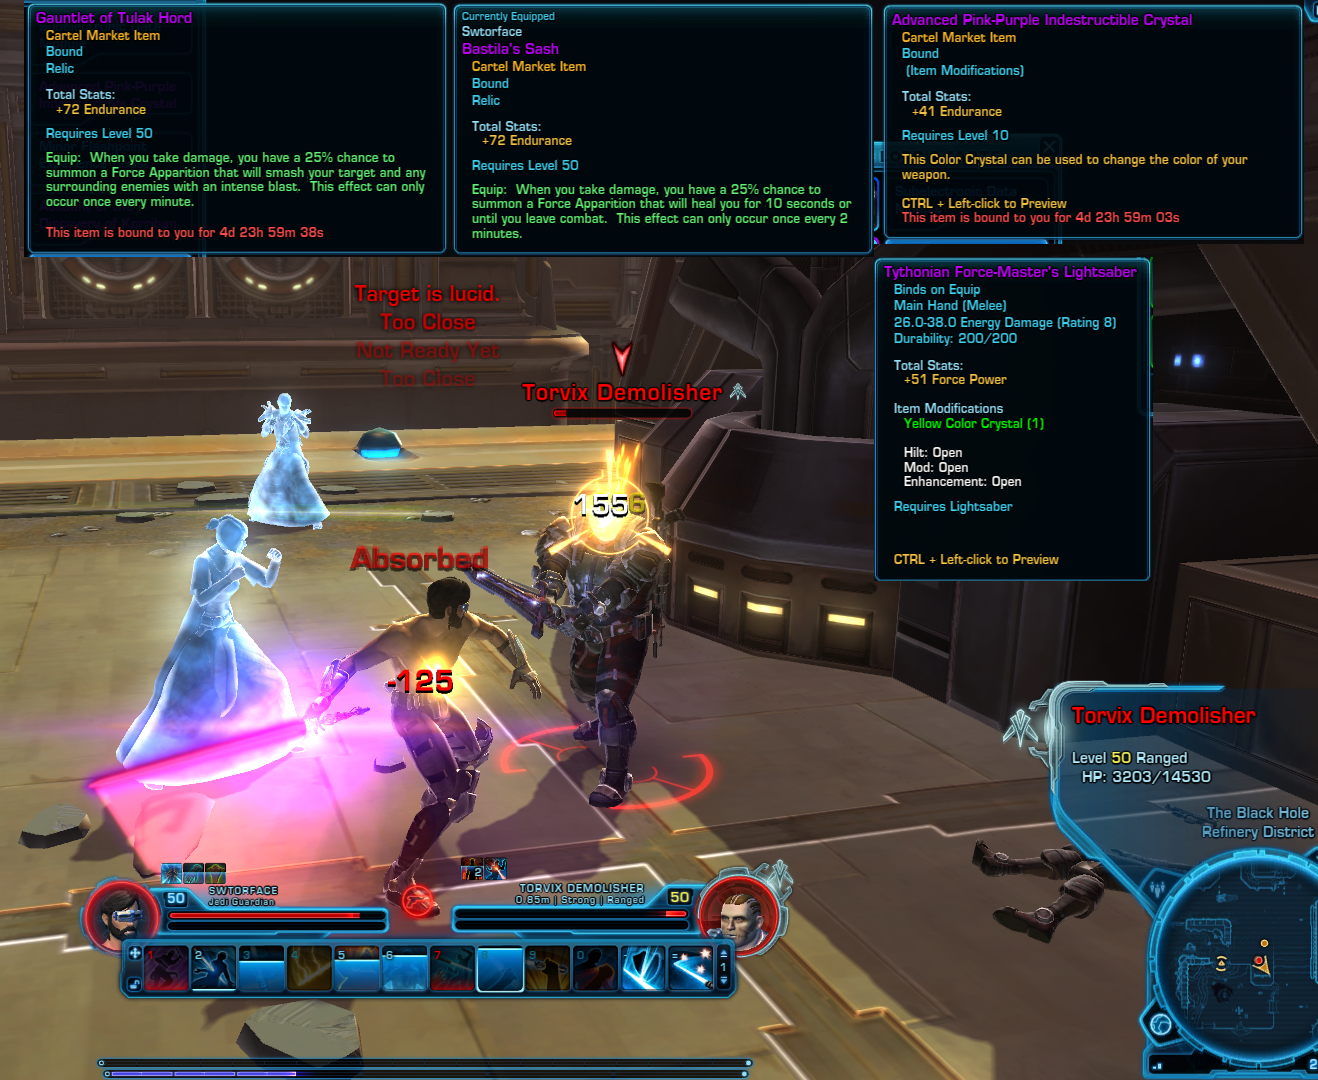 Swtor character slot cost / Online Casino Portal